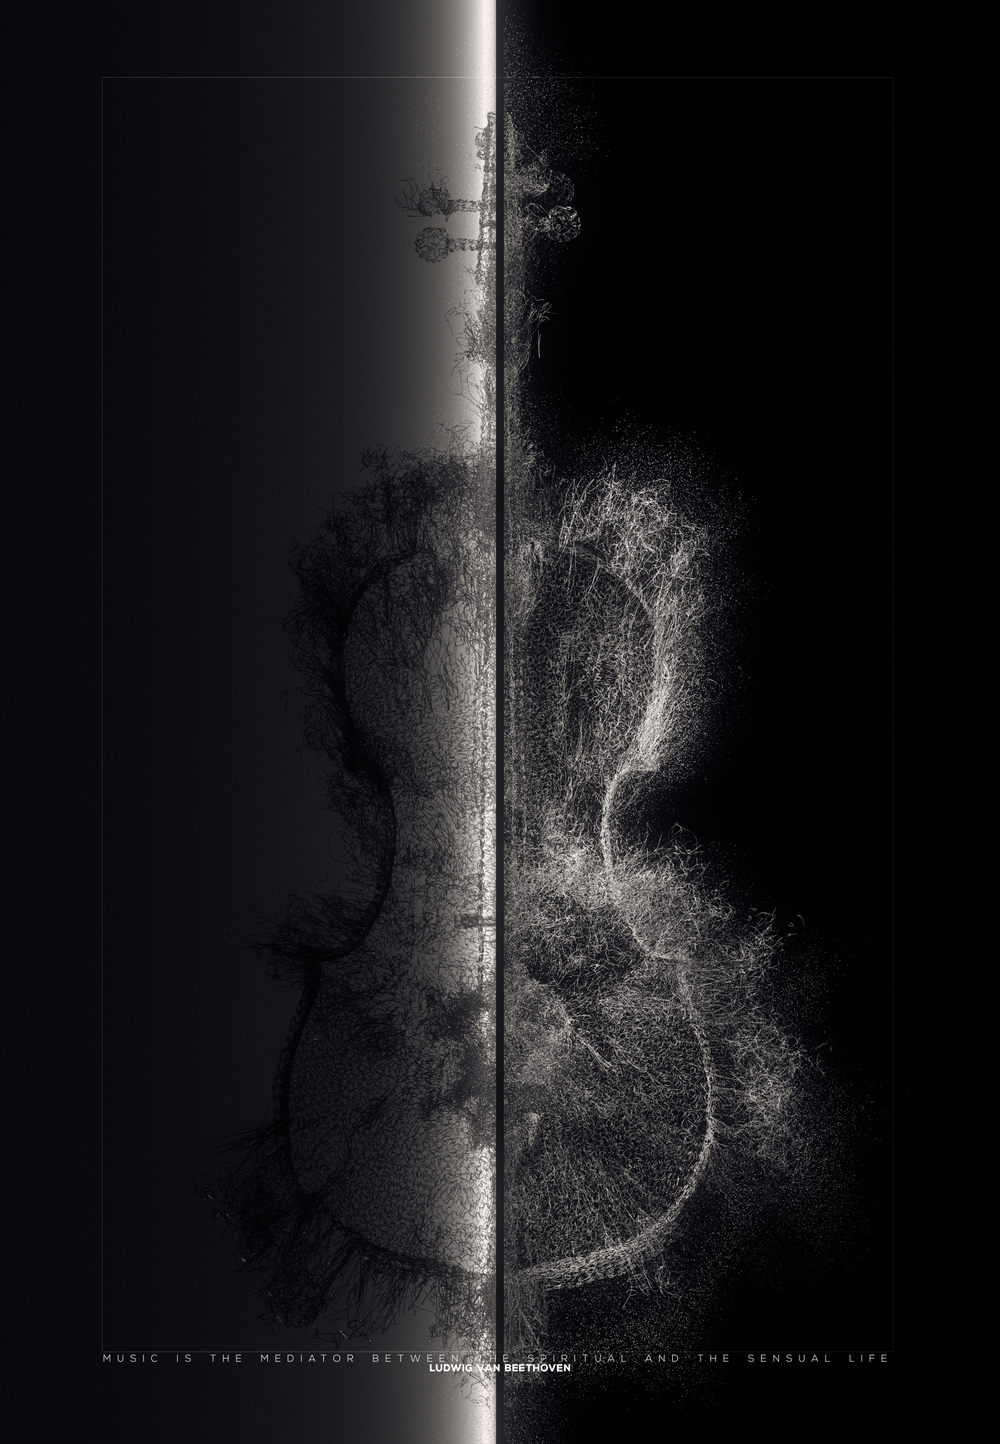 Cello_Beethoven.png